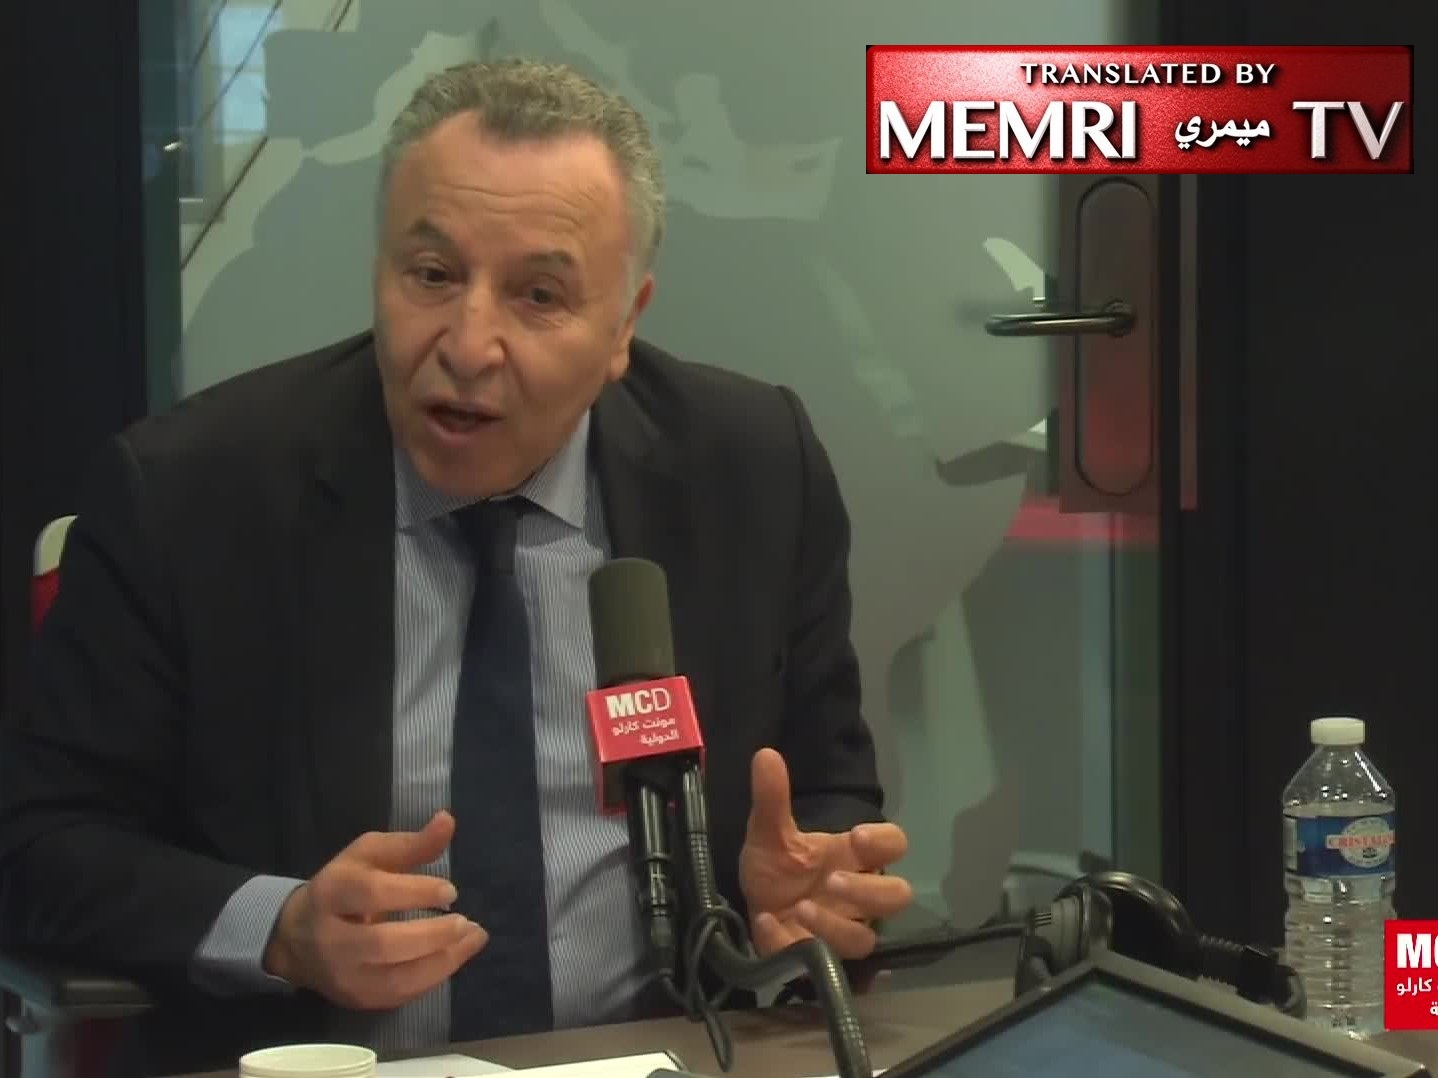 French-Tunisian Lawyer Majid Bouden Calls to Separate Religion from State: Terrorism Is the Outcome of Political Islam